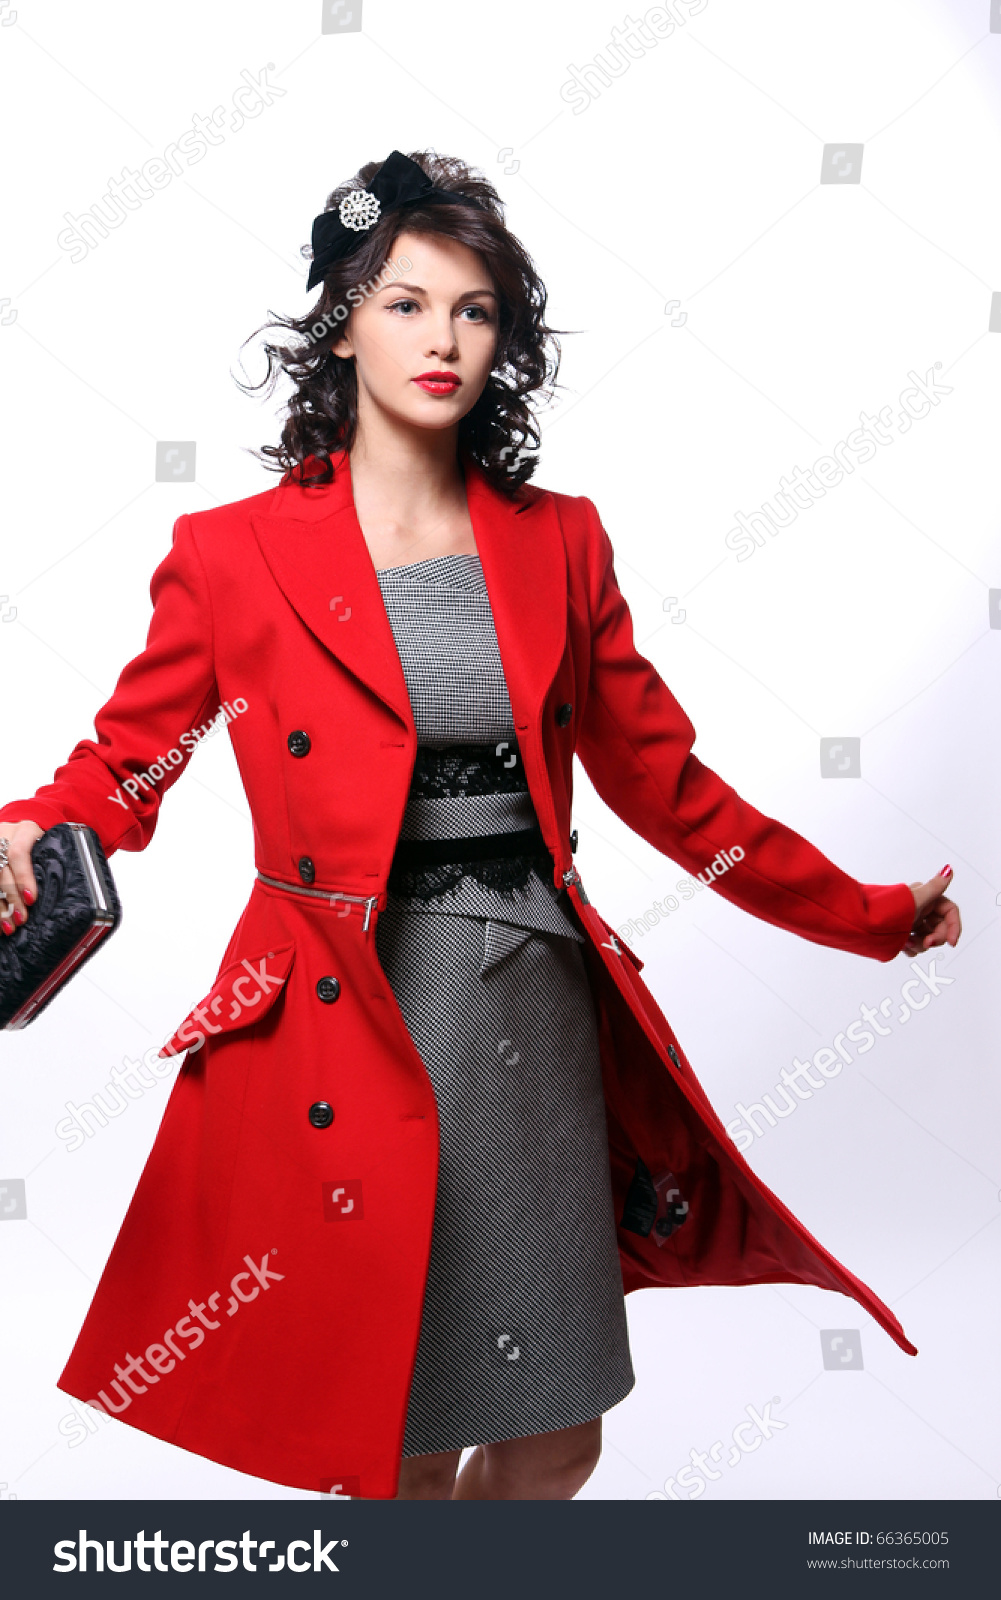 Woman In Red Coat q2xWMU